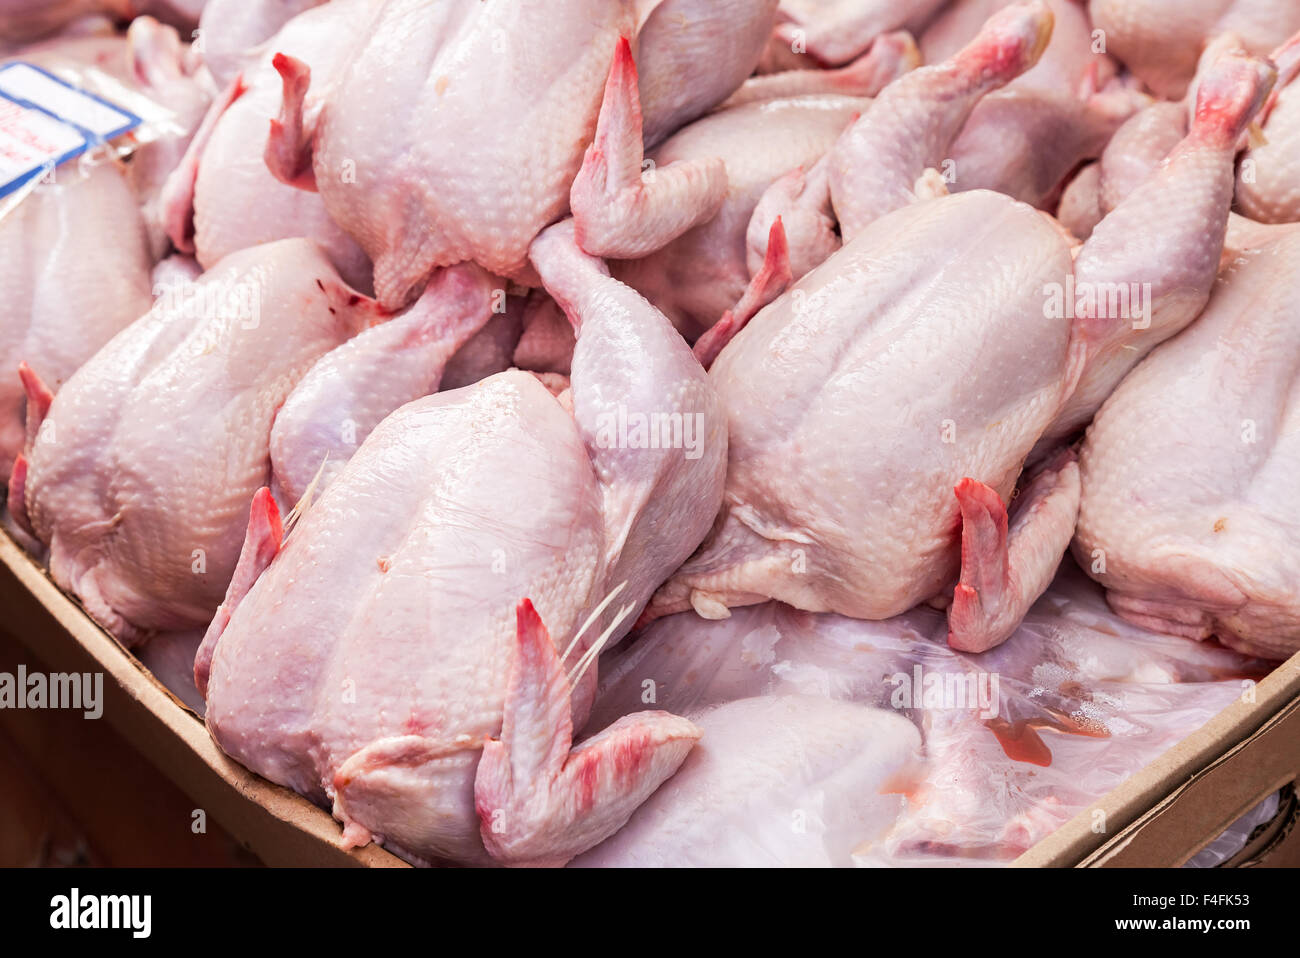 Meat of poultry ready to sale at the farmers market - Stock Image